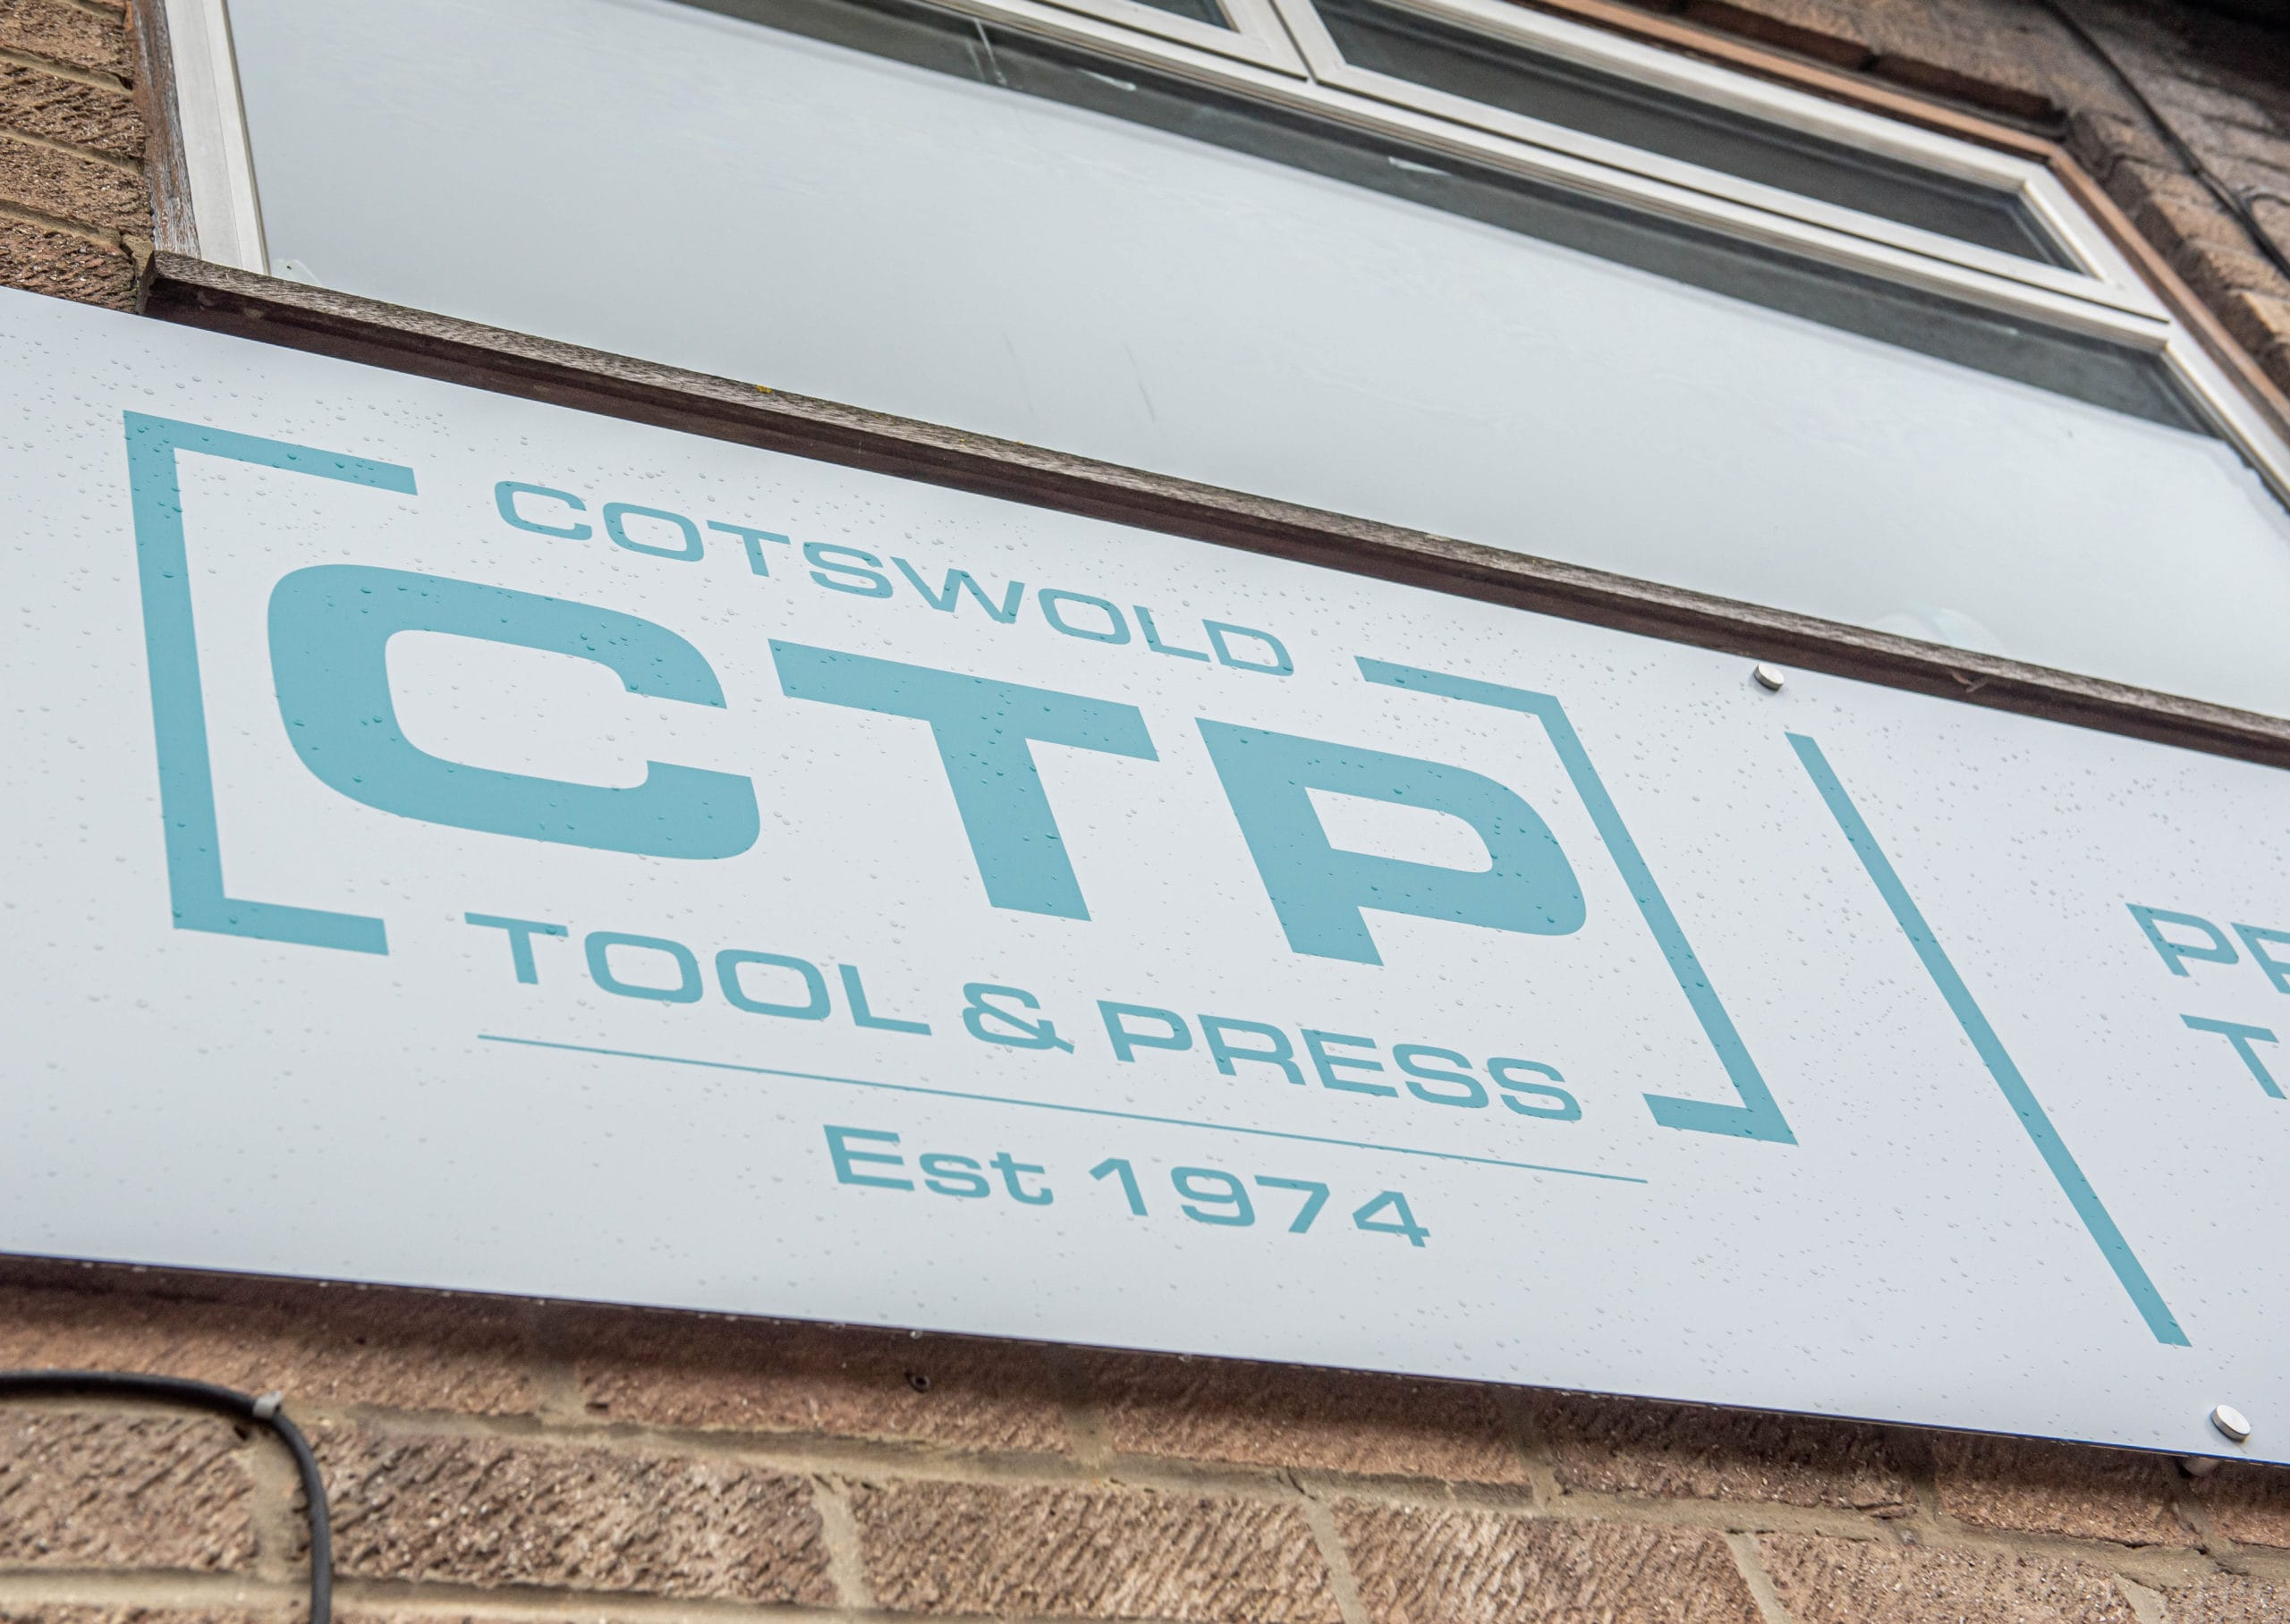 Cotswold Tool & Press